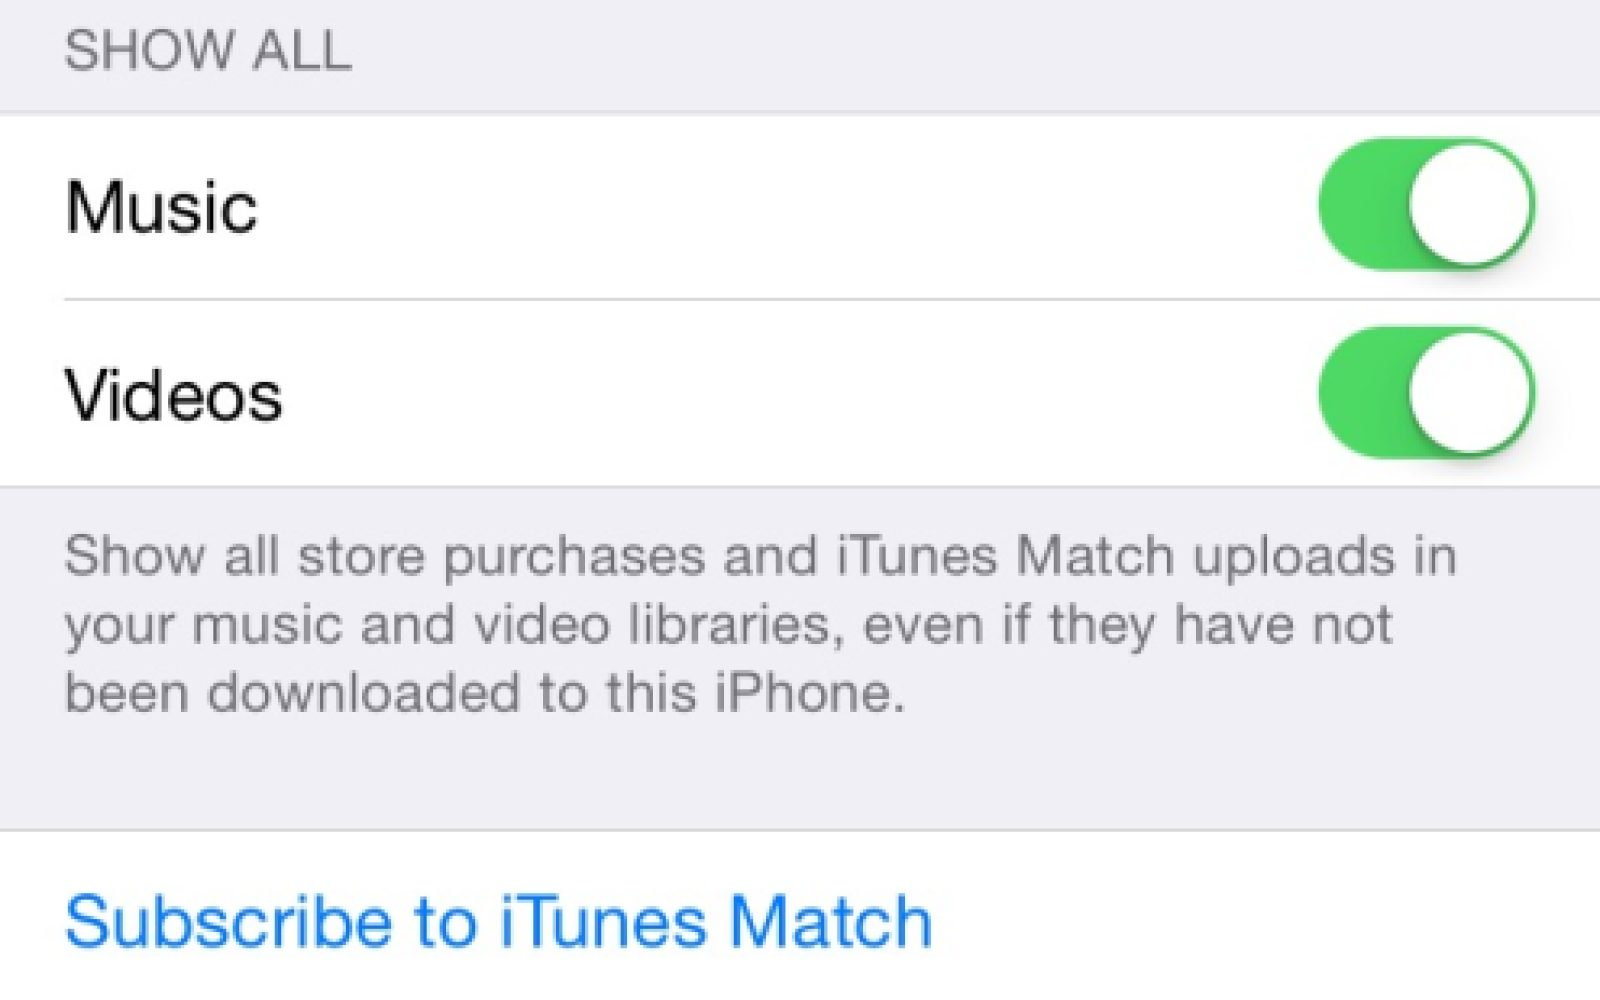 iOS 8 3 includes settings to download free apps and iTunes content